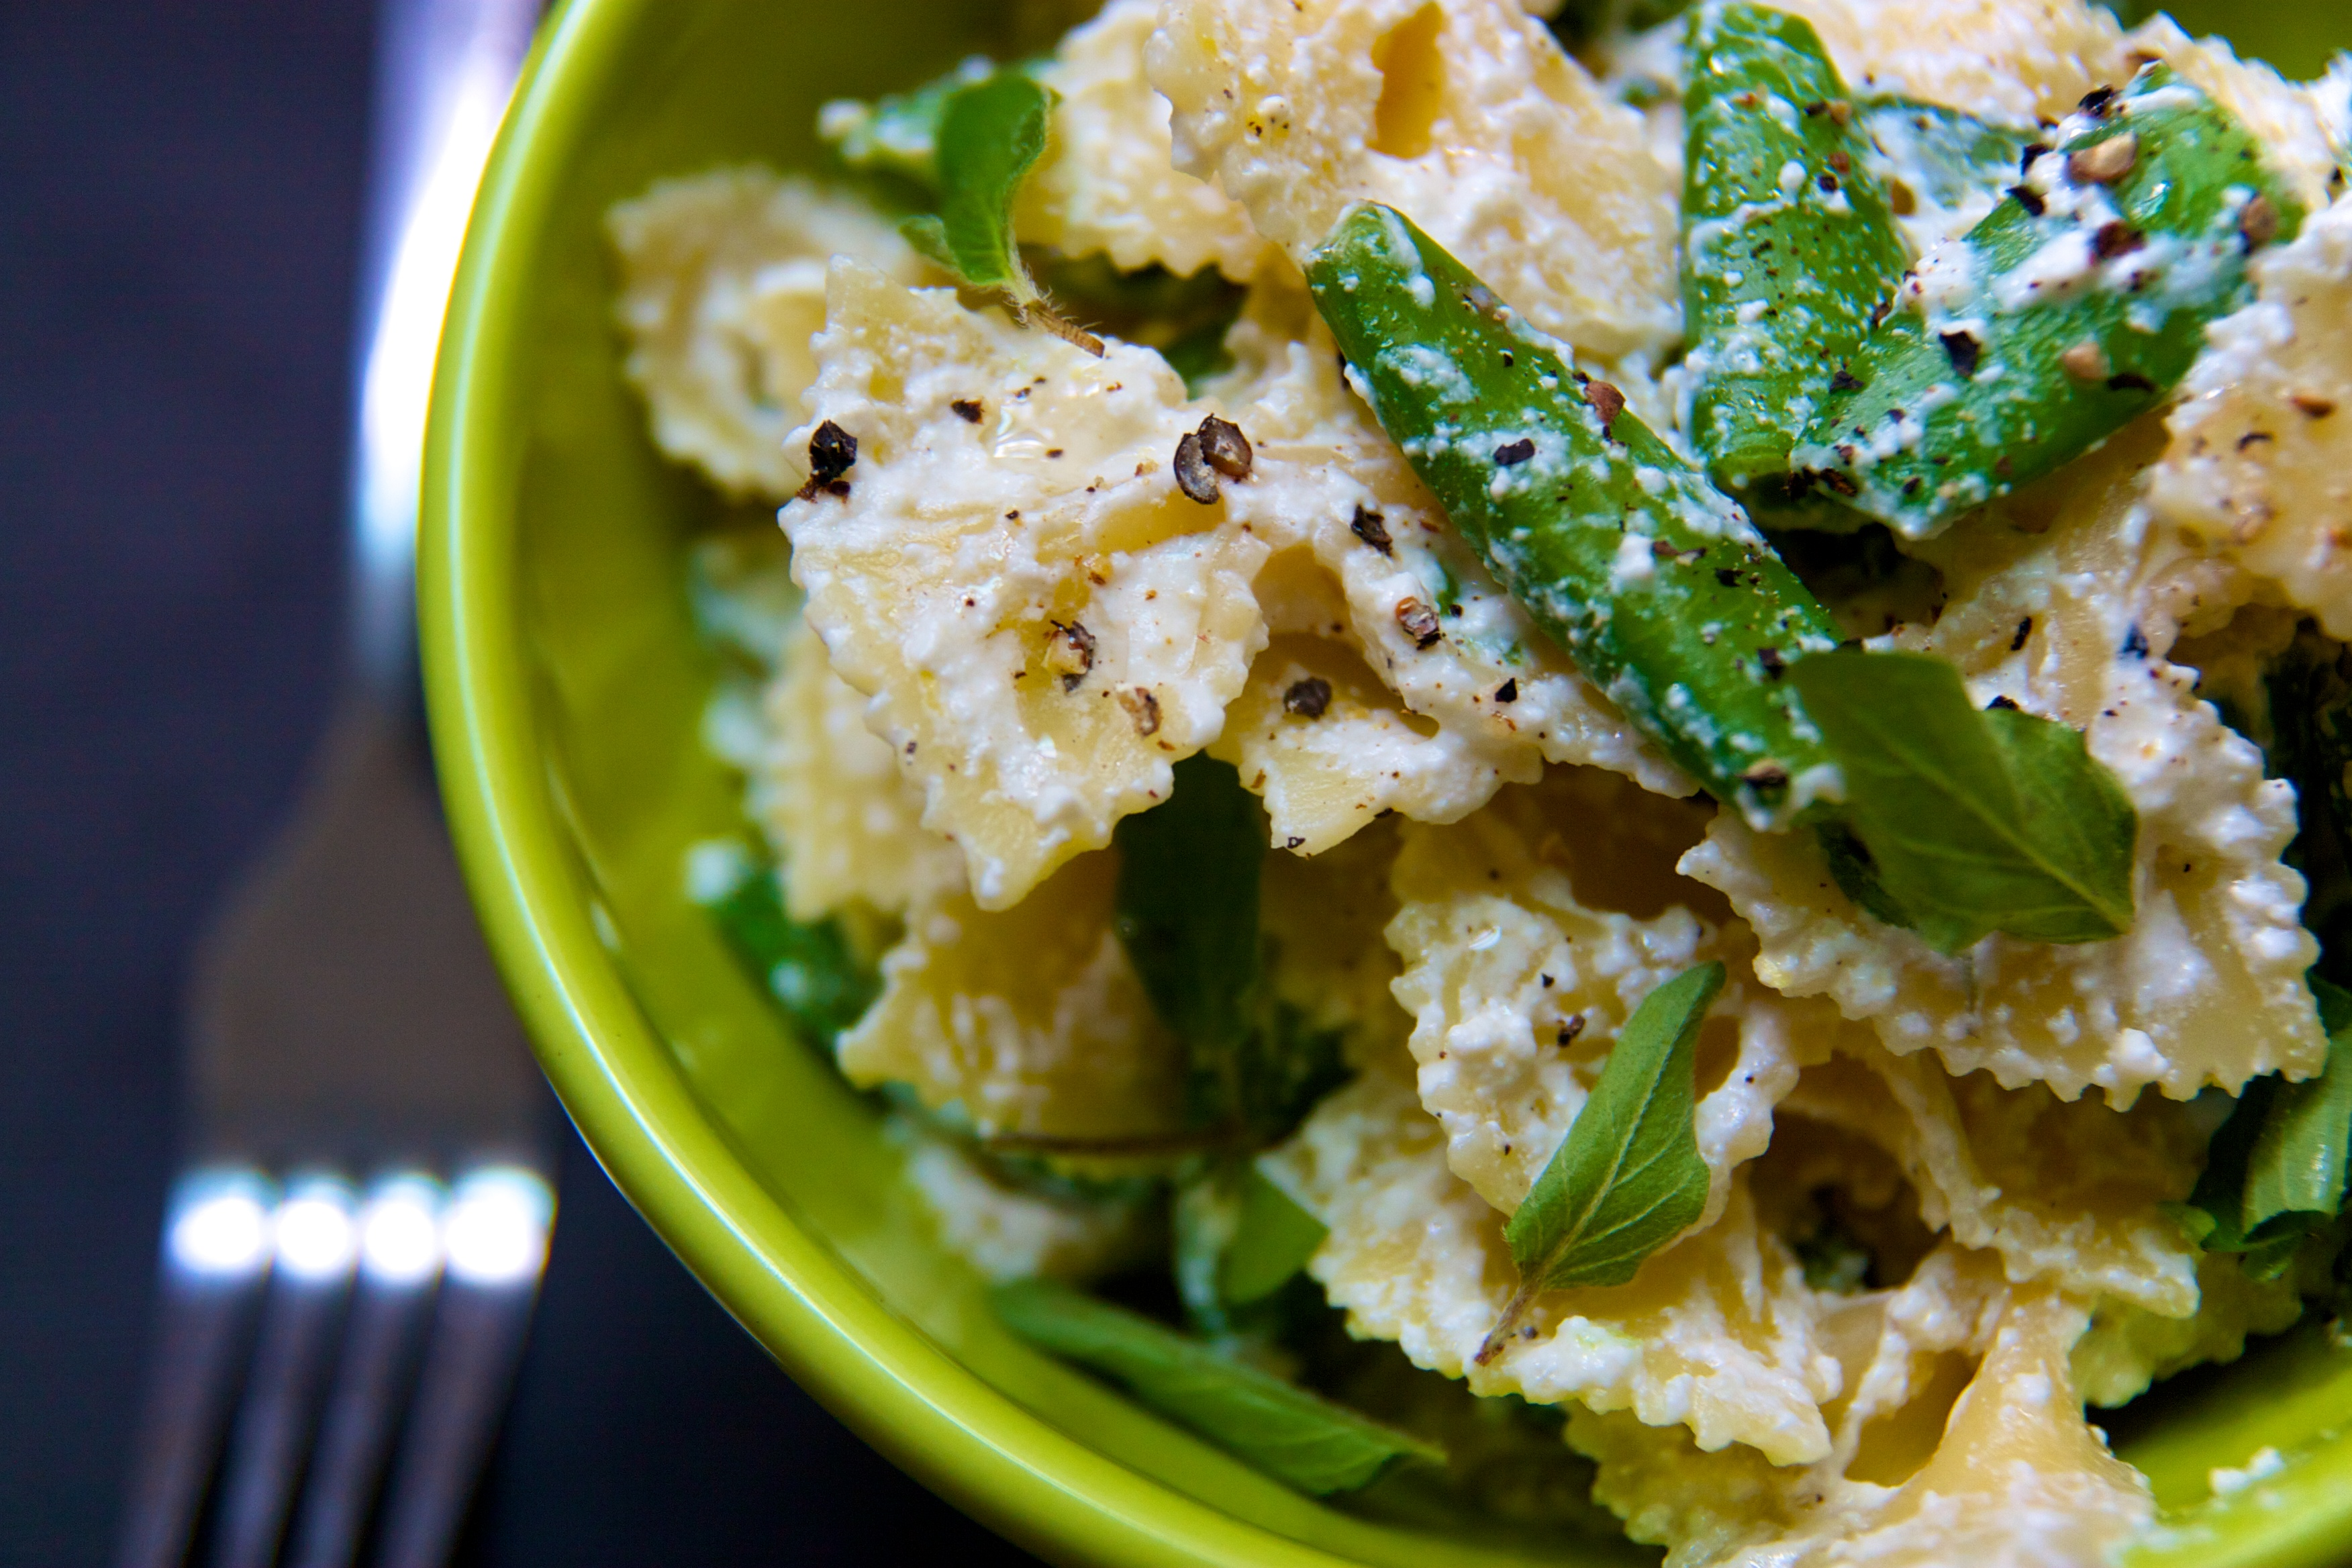 Farfalle with Lemon Scented Ricotta, Sugar Snap Peas and Oregano